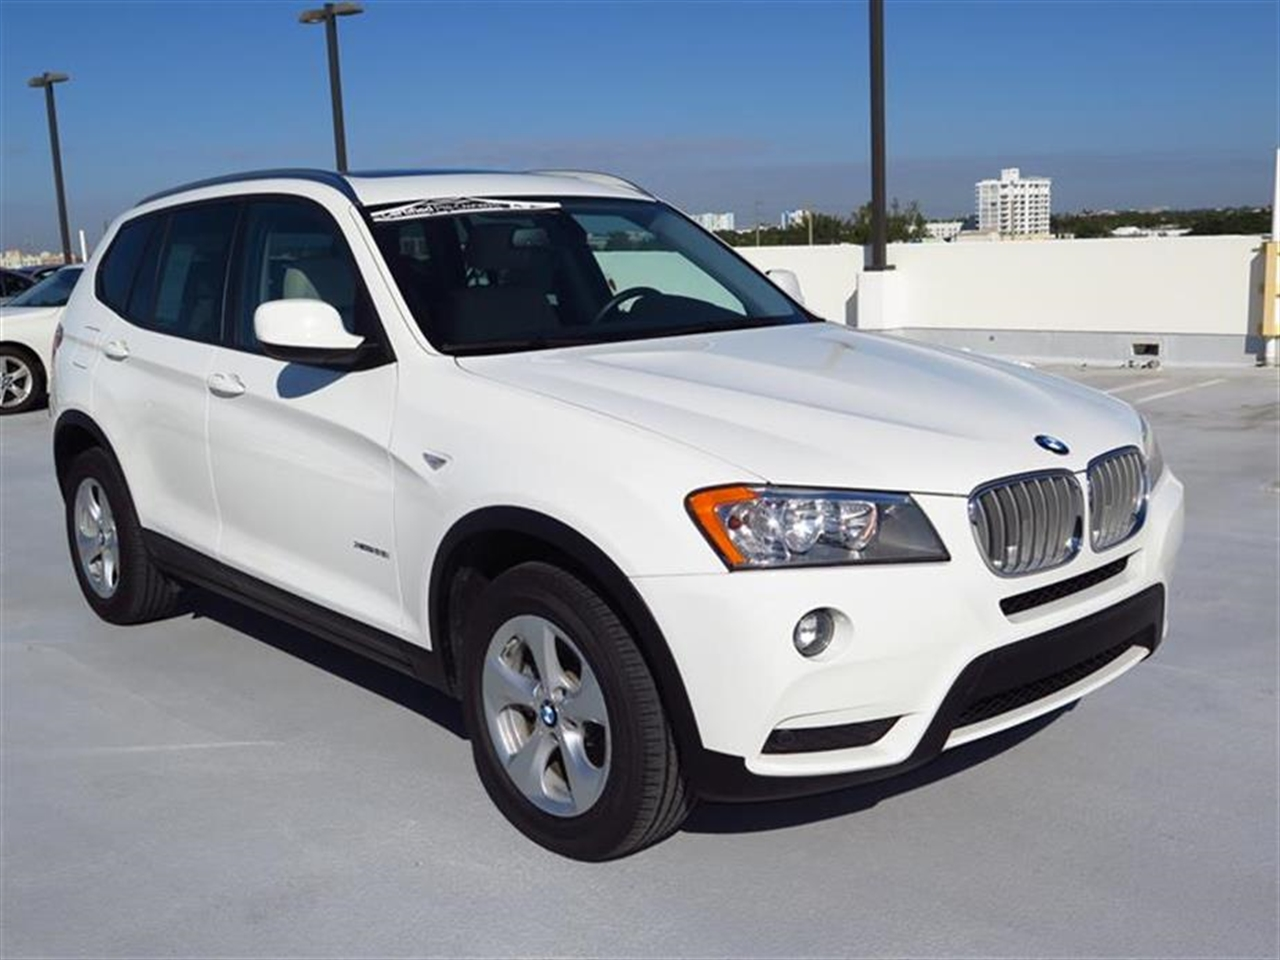 2012 BMW X3 AWD 4dr 28i 20494 miles 3-spoke leather-wrapped multi-function sport steering wheel wi